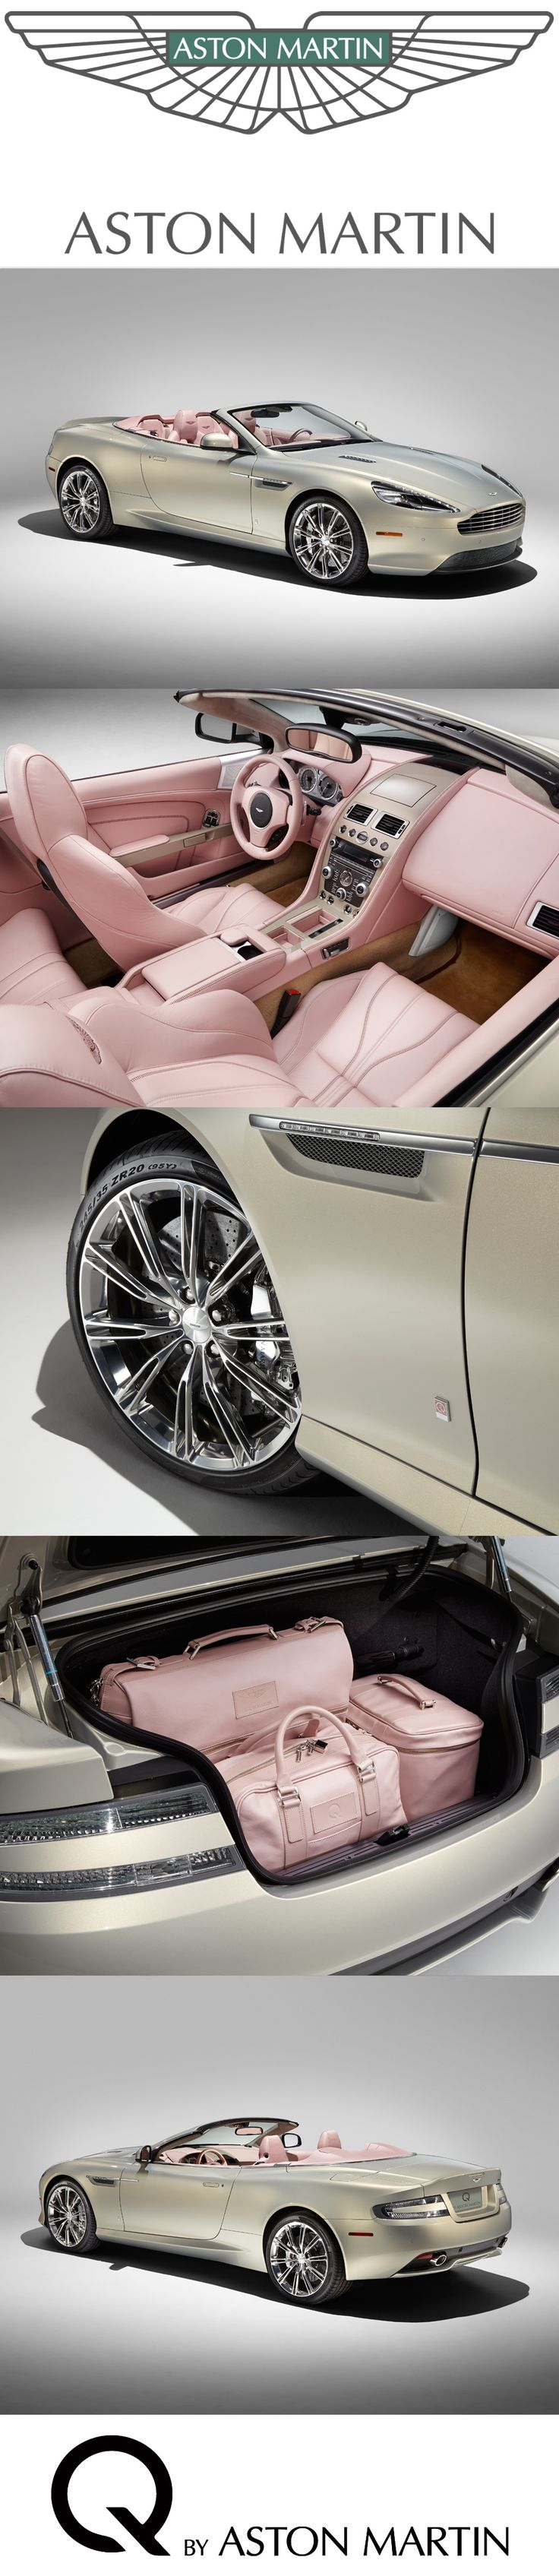 Aston Martin 'Q' Limited Edition Customised Beautifully For The Billionairess Who Loves All Things Luxe & Pink -ShazB